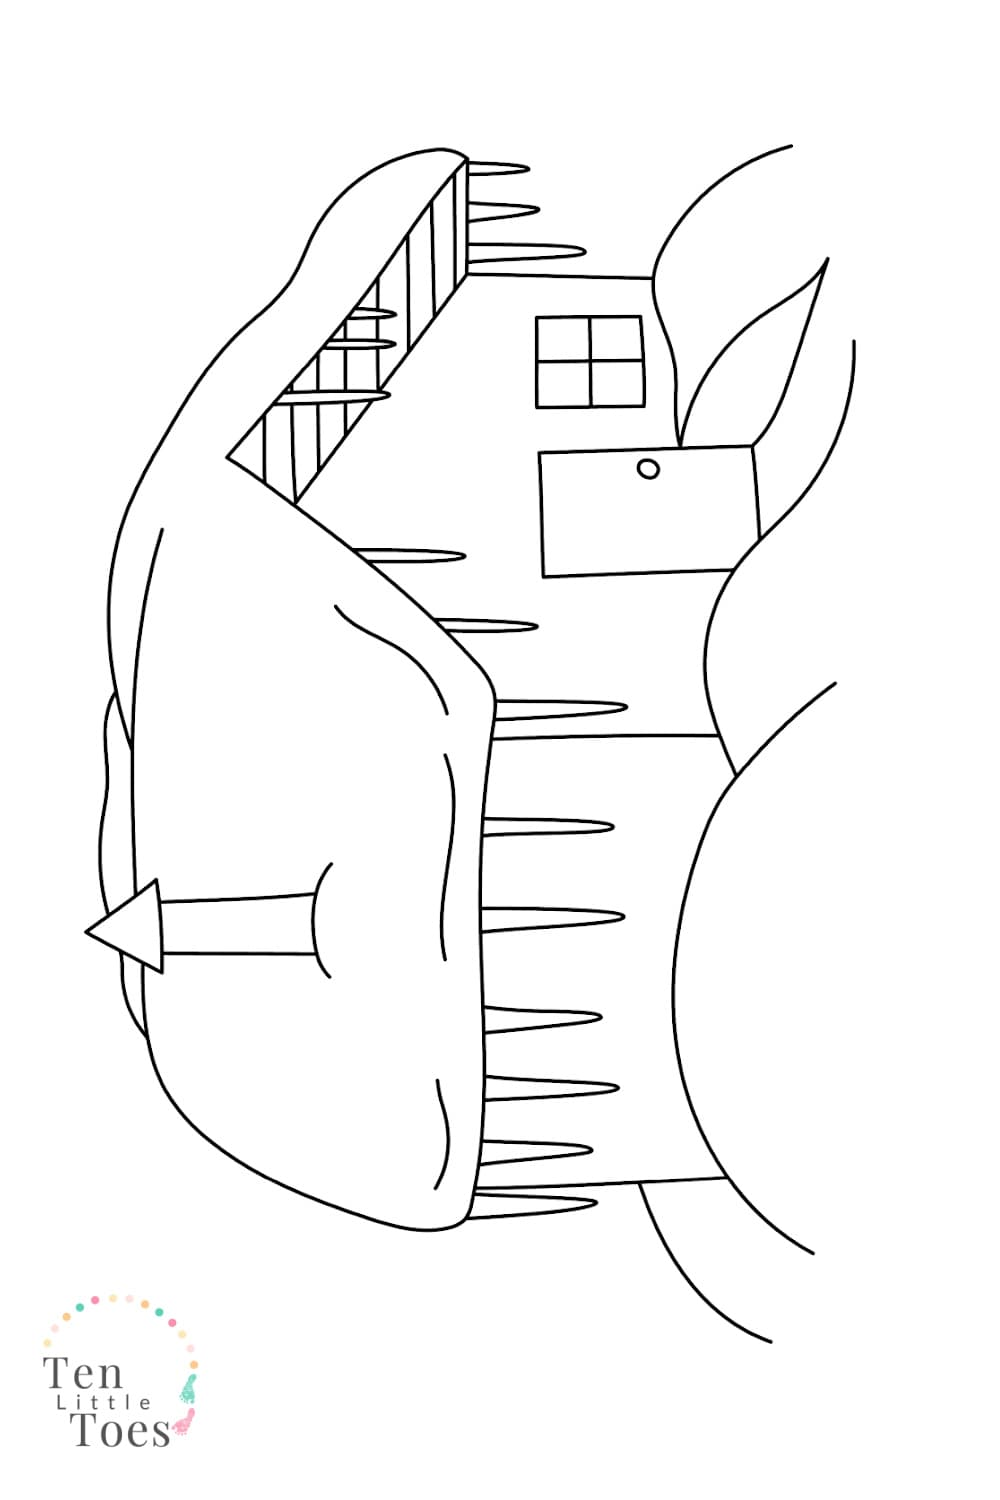 coloring pages of cabins simple log cabin coloring page for kids and adults coloring of cabins pages